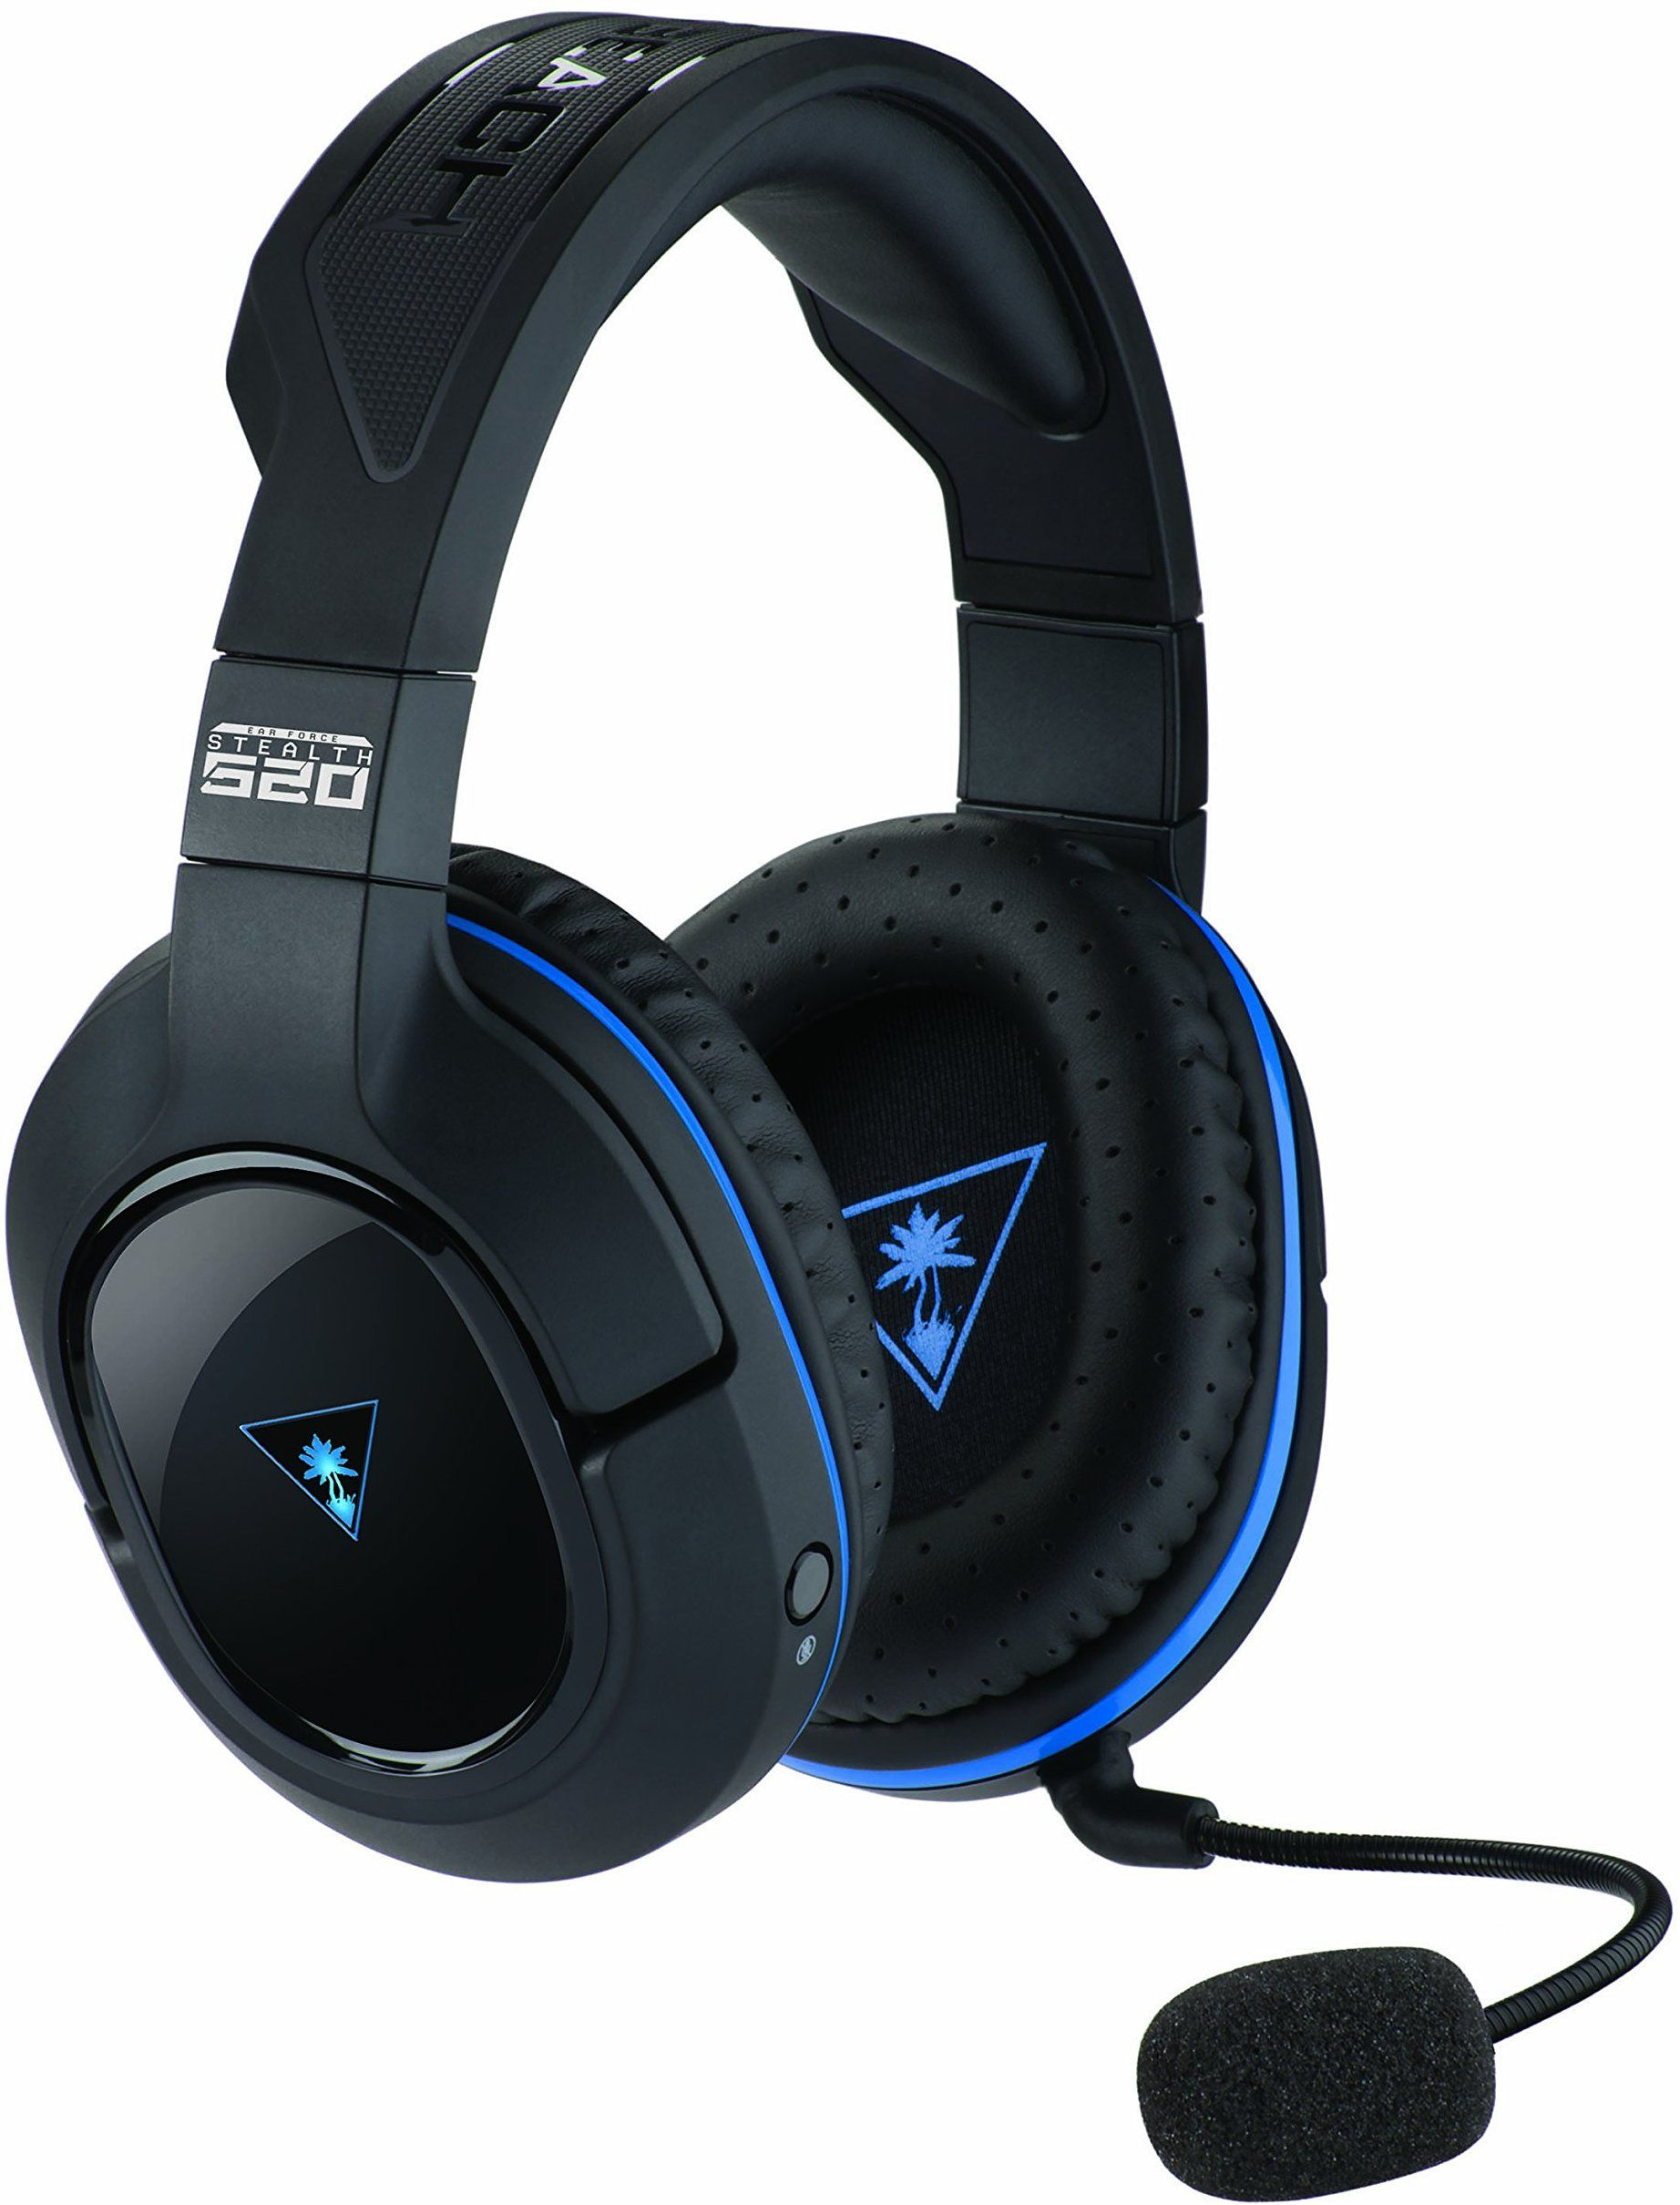 Turtle Beach Stealth 520 Premium Fully Wireless Gaming Headset Ps4 Pro Ps4 Ps3 Discontinued By Manufacturer Video Games